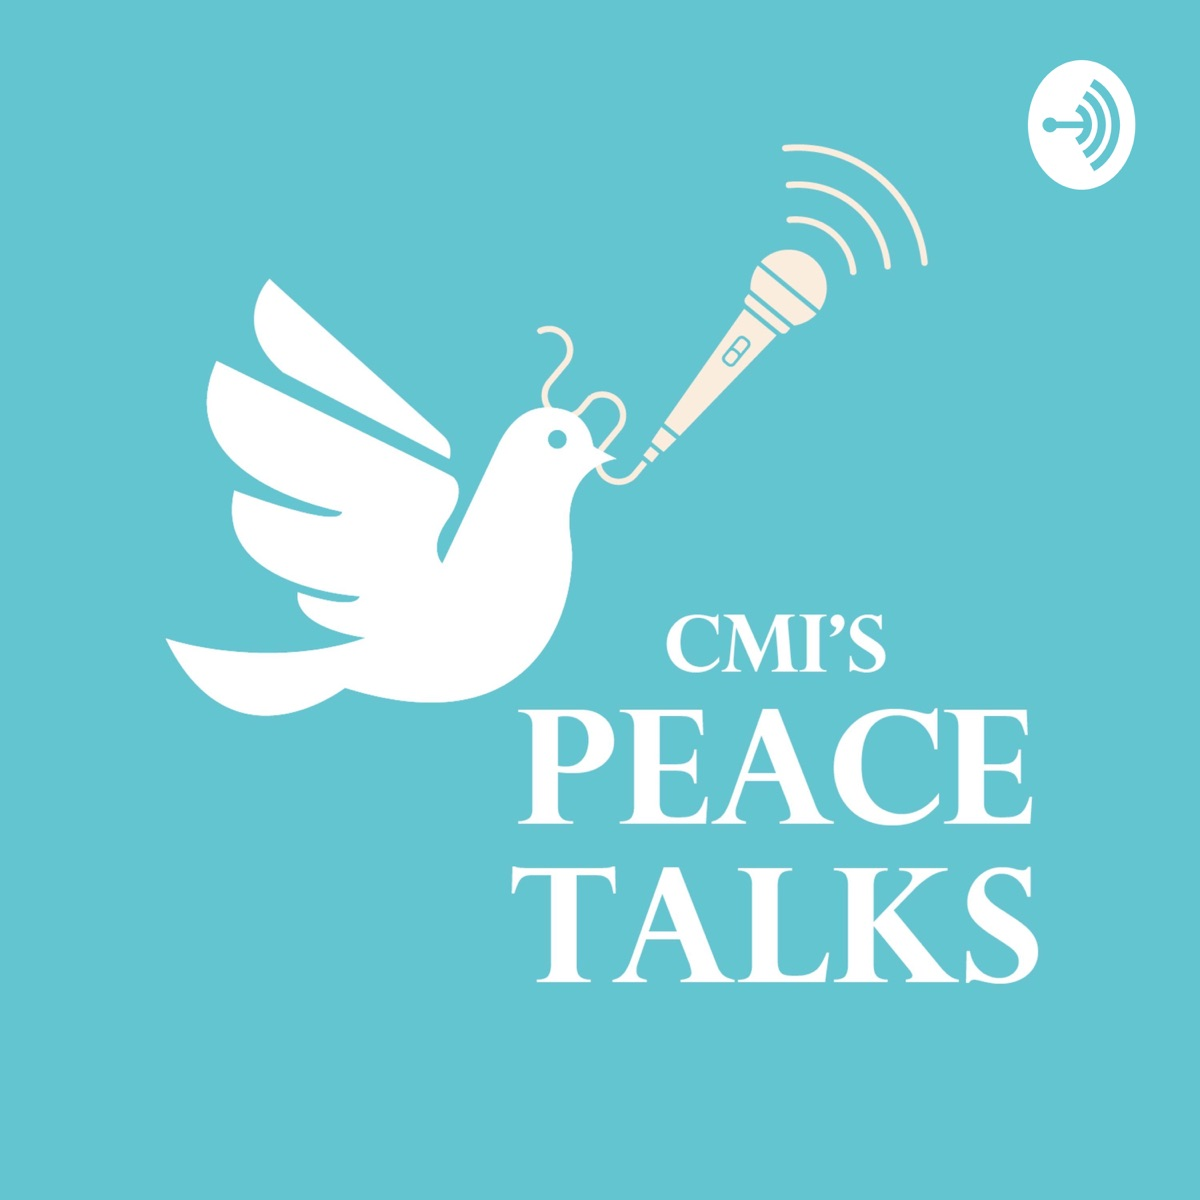 CMI's Peace Talks